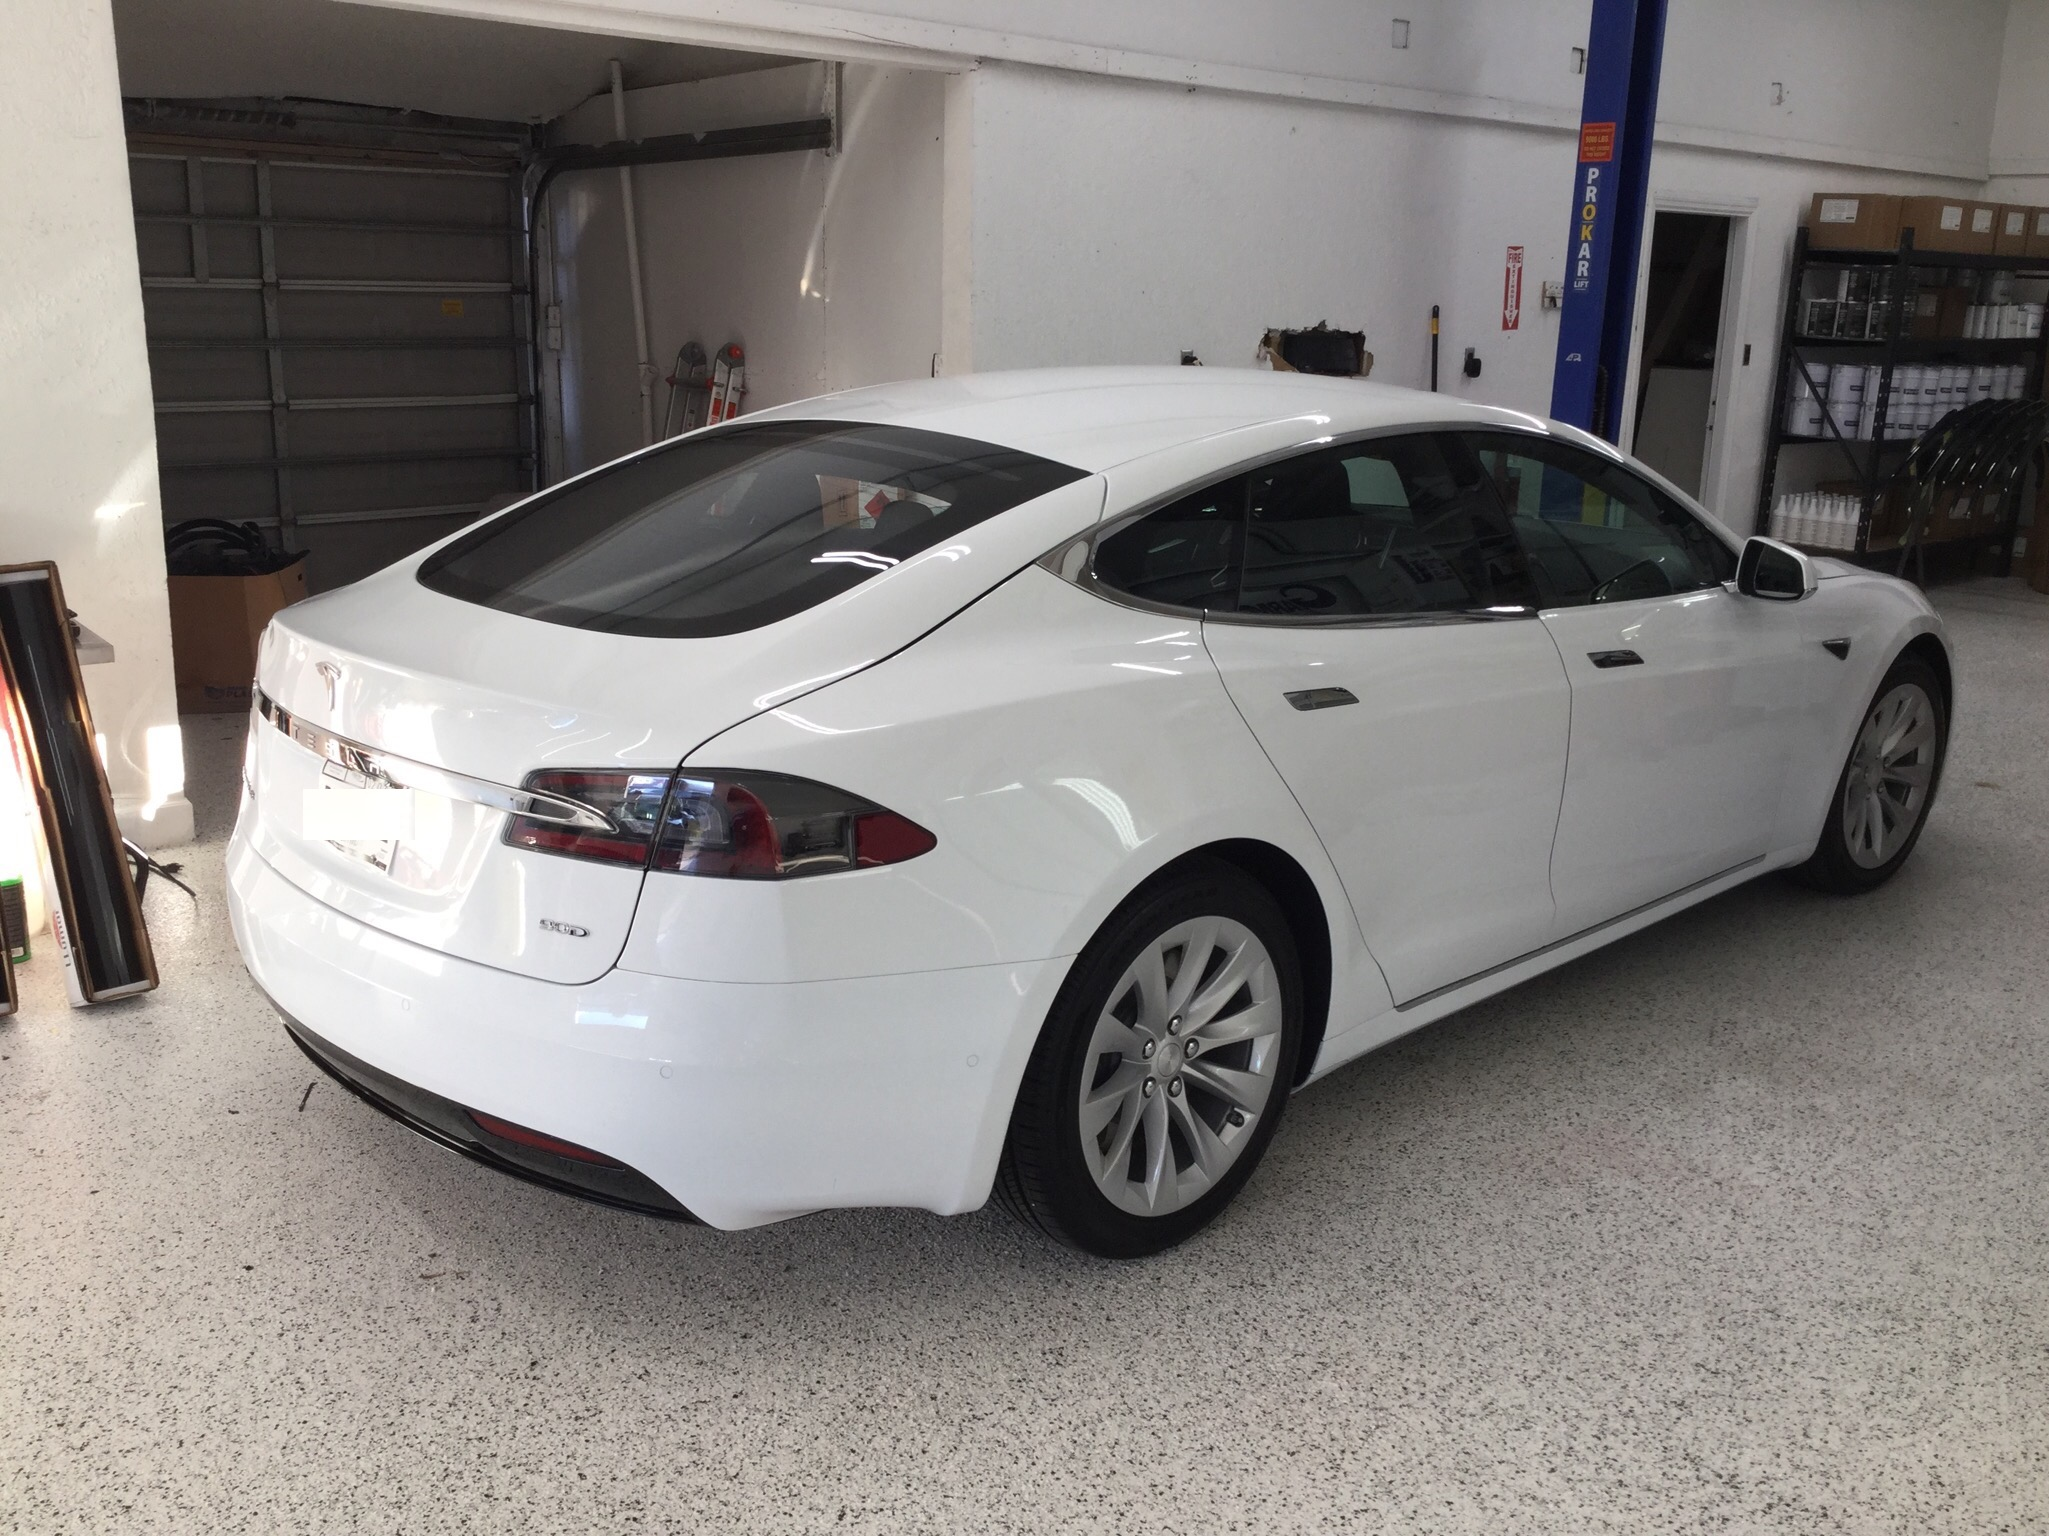 Huper Optik Xtreme Tint for Tesla in Los Angeles